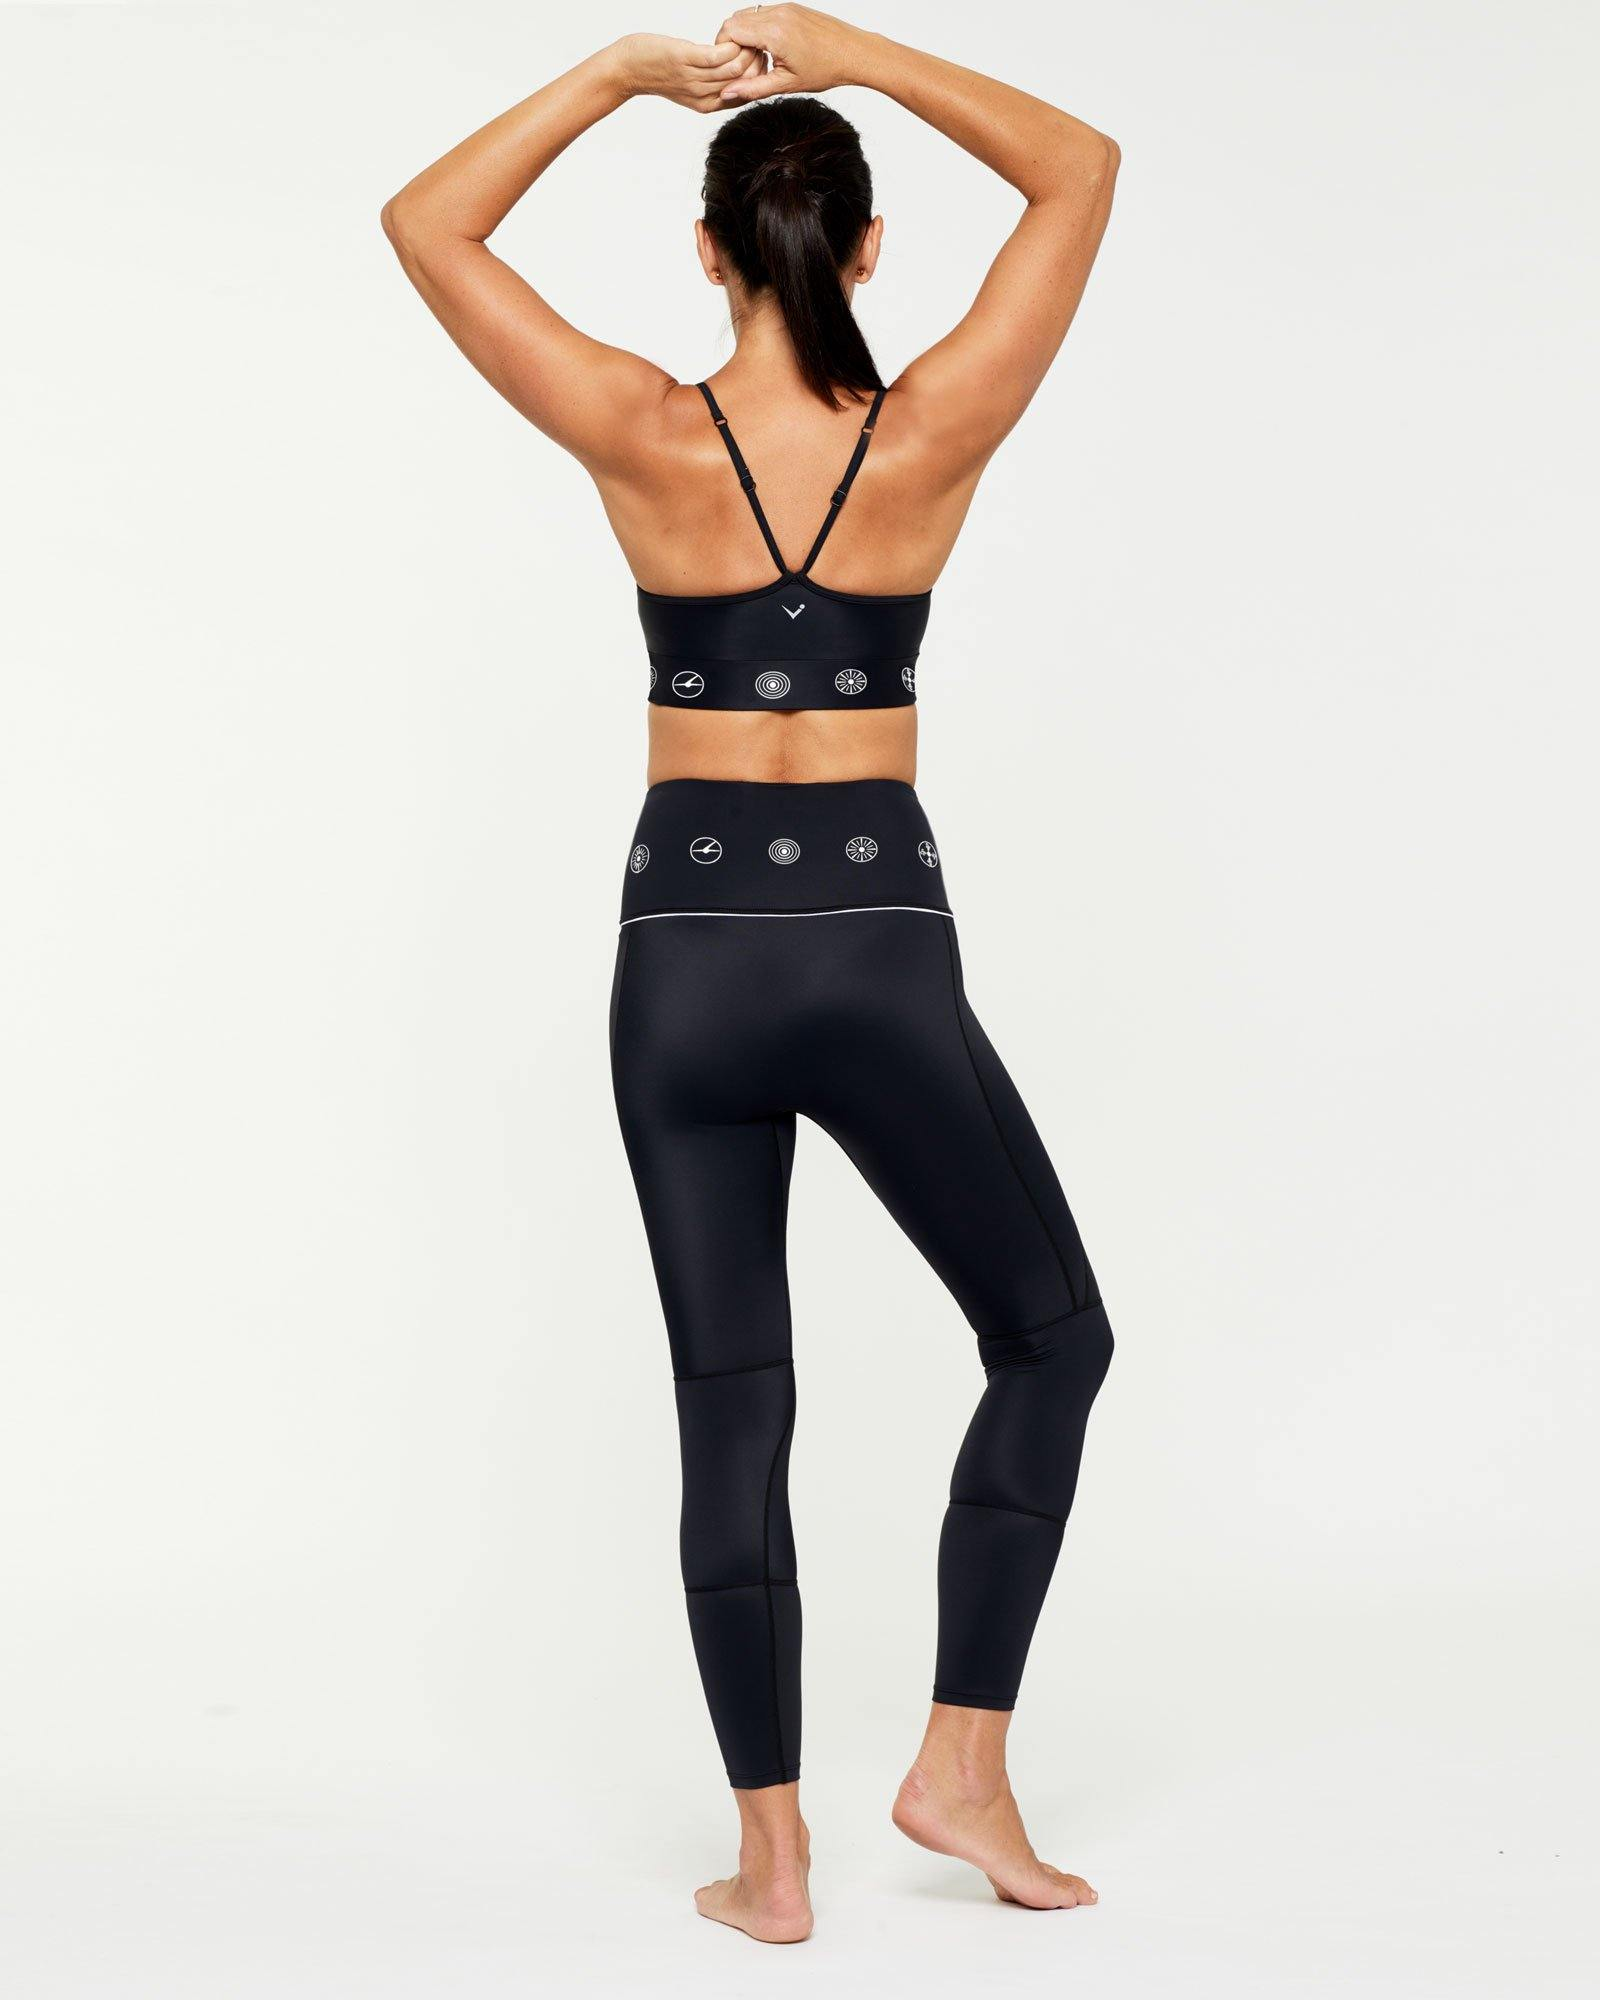 Companion Infraspinatus Bra top worn with GRACILIS 7/8 LENGTH LEGGING BLACK WITH WHITE SYMBOLS, BACK VIEW